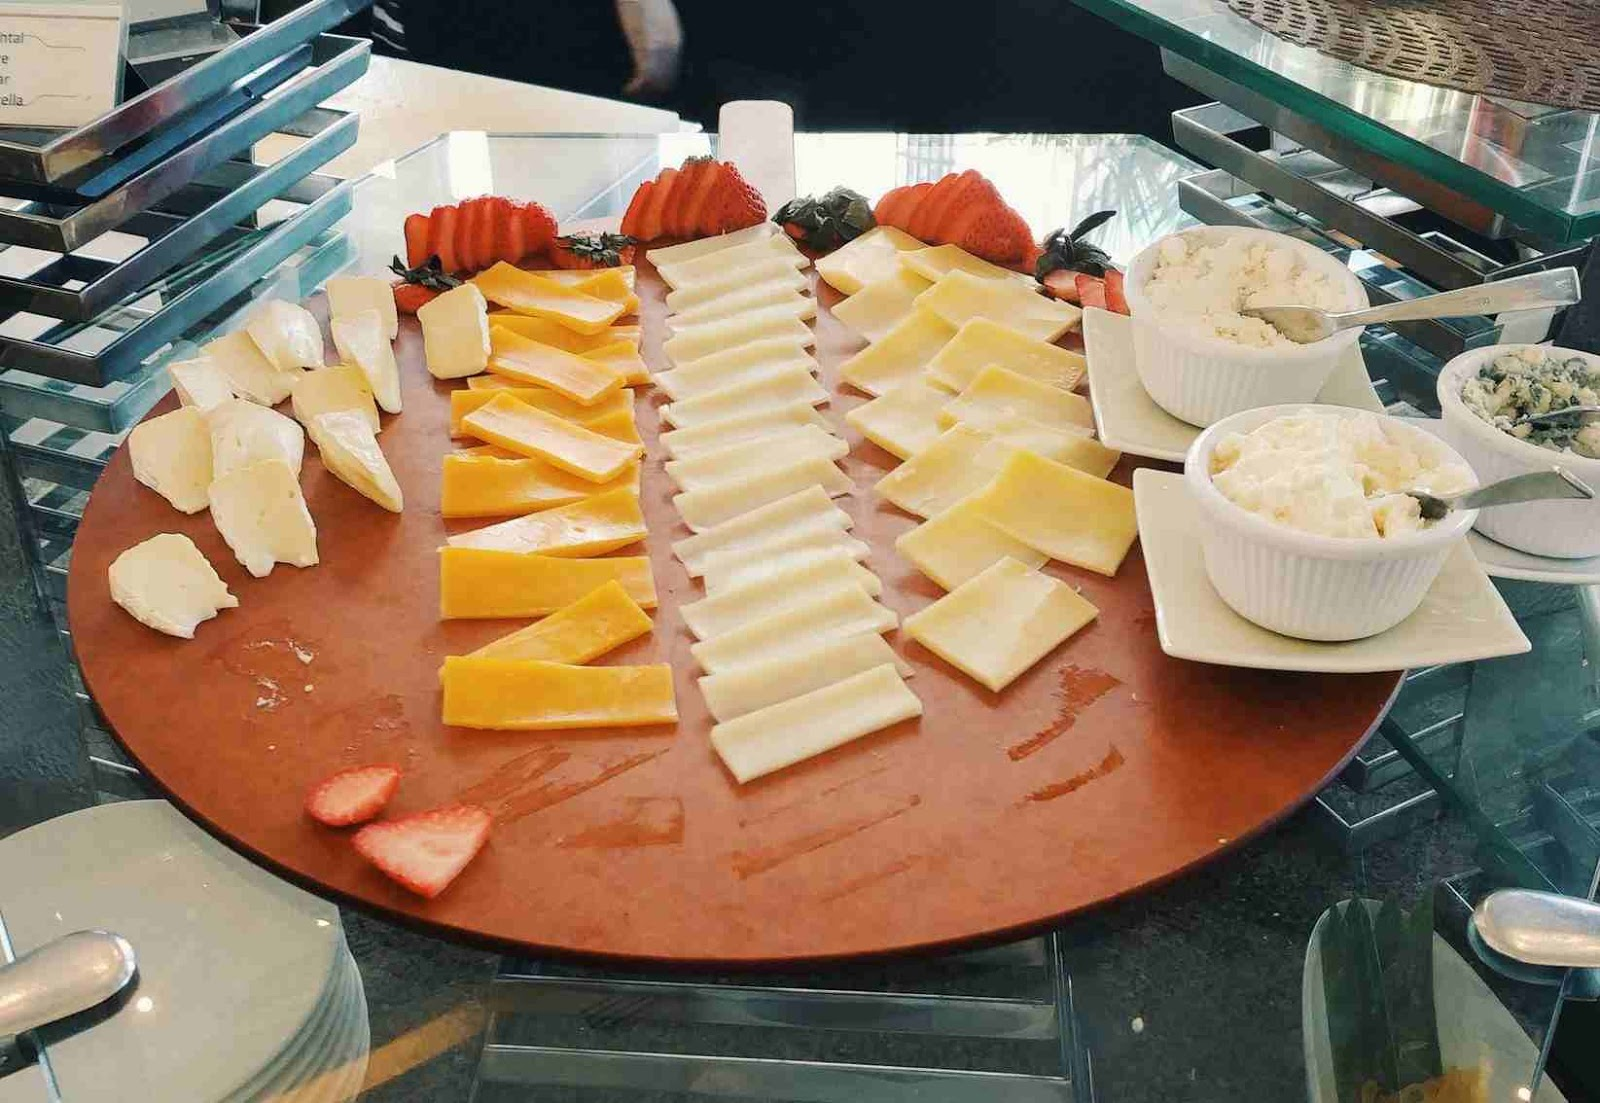 Cheese board at Acaci Cafe in Acacia Hotel